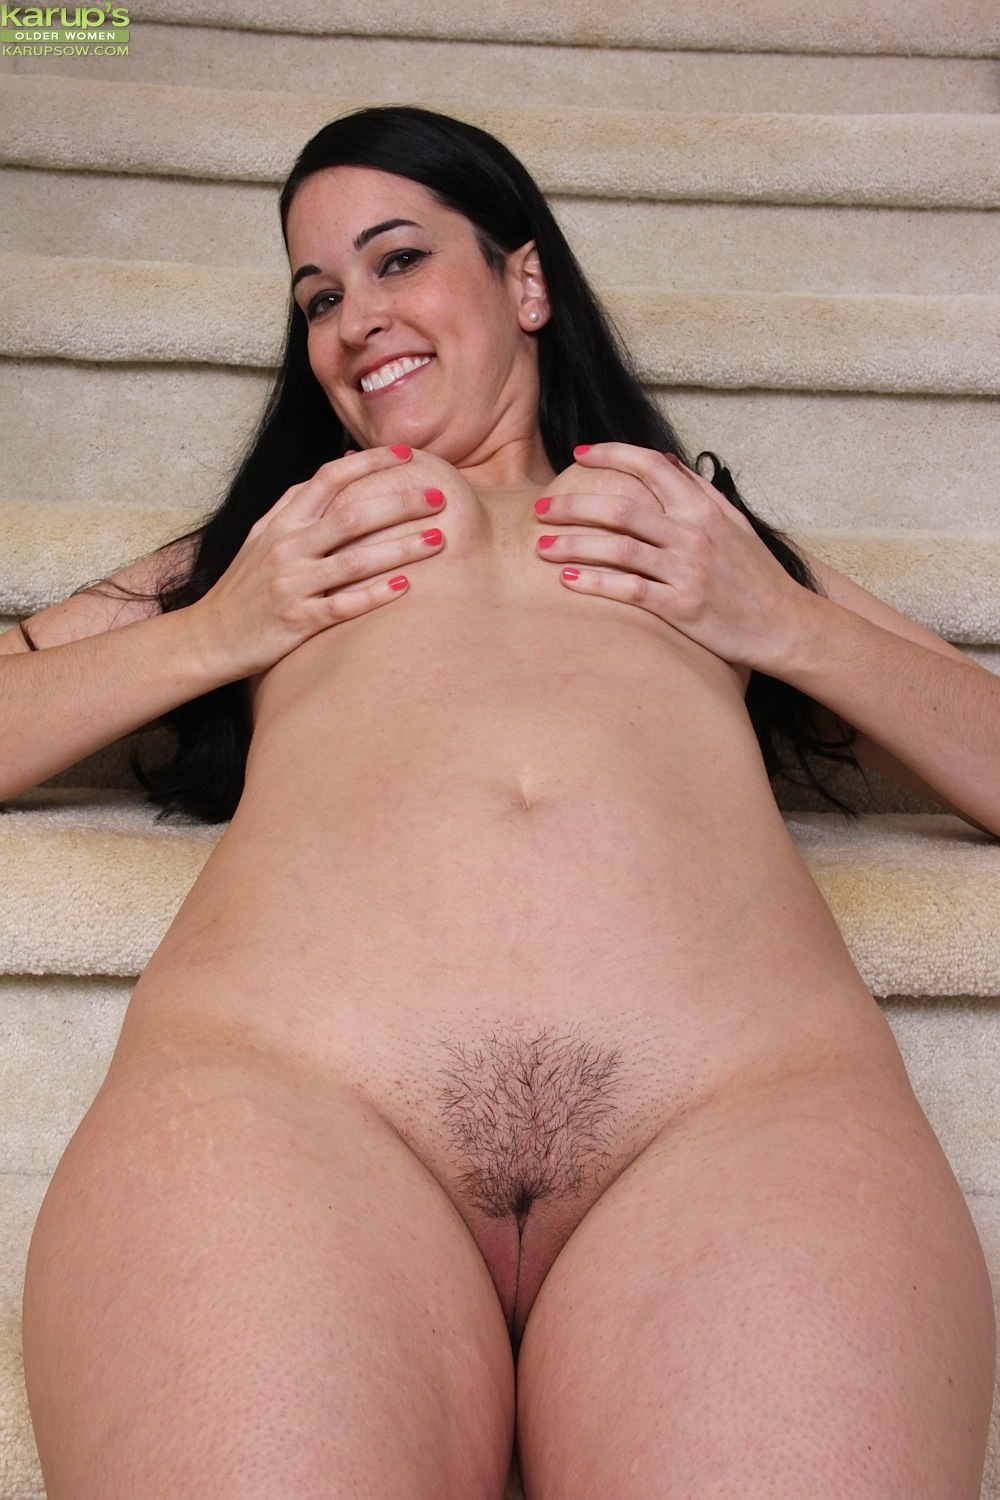 Smiley brunette nyla parker undressing slowly to suck on her sexy toes naked